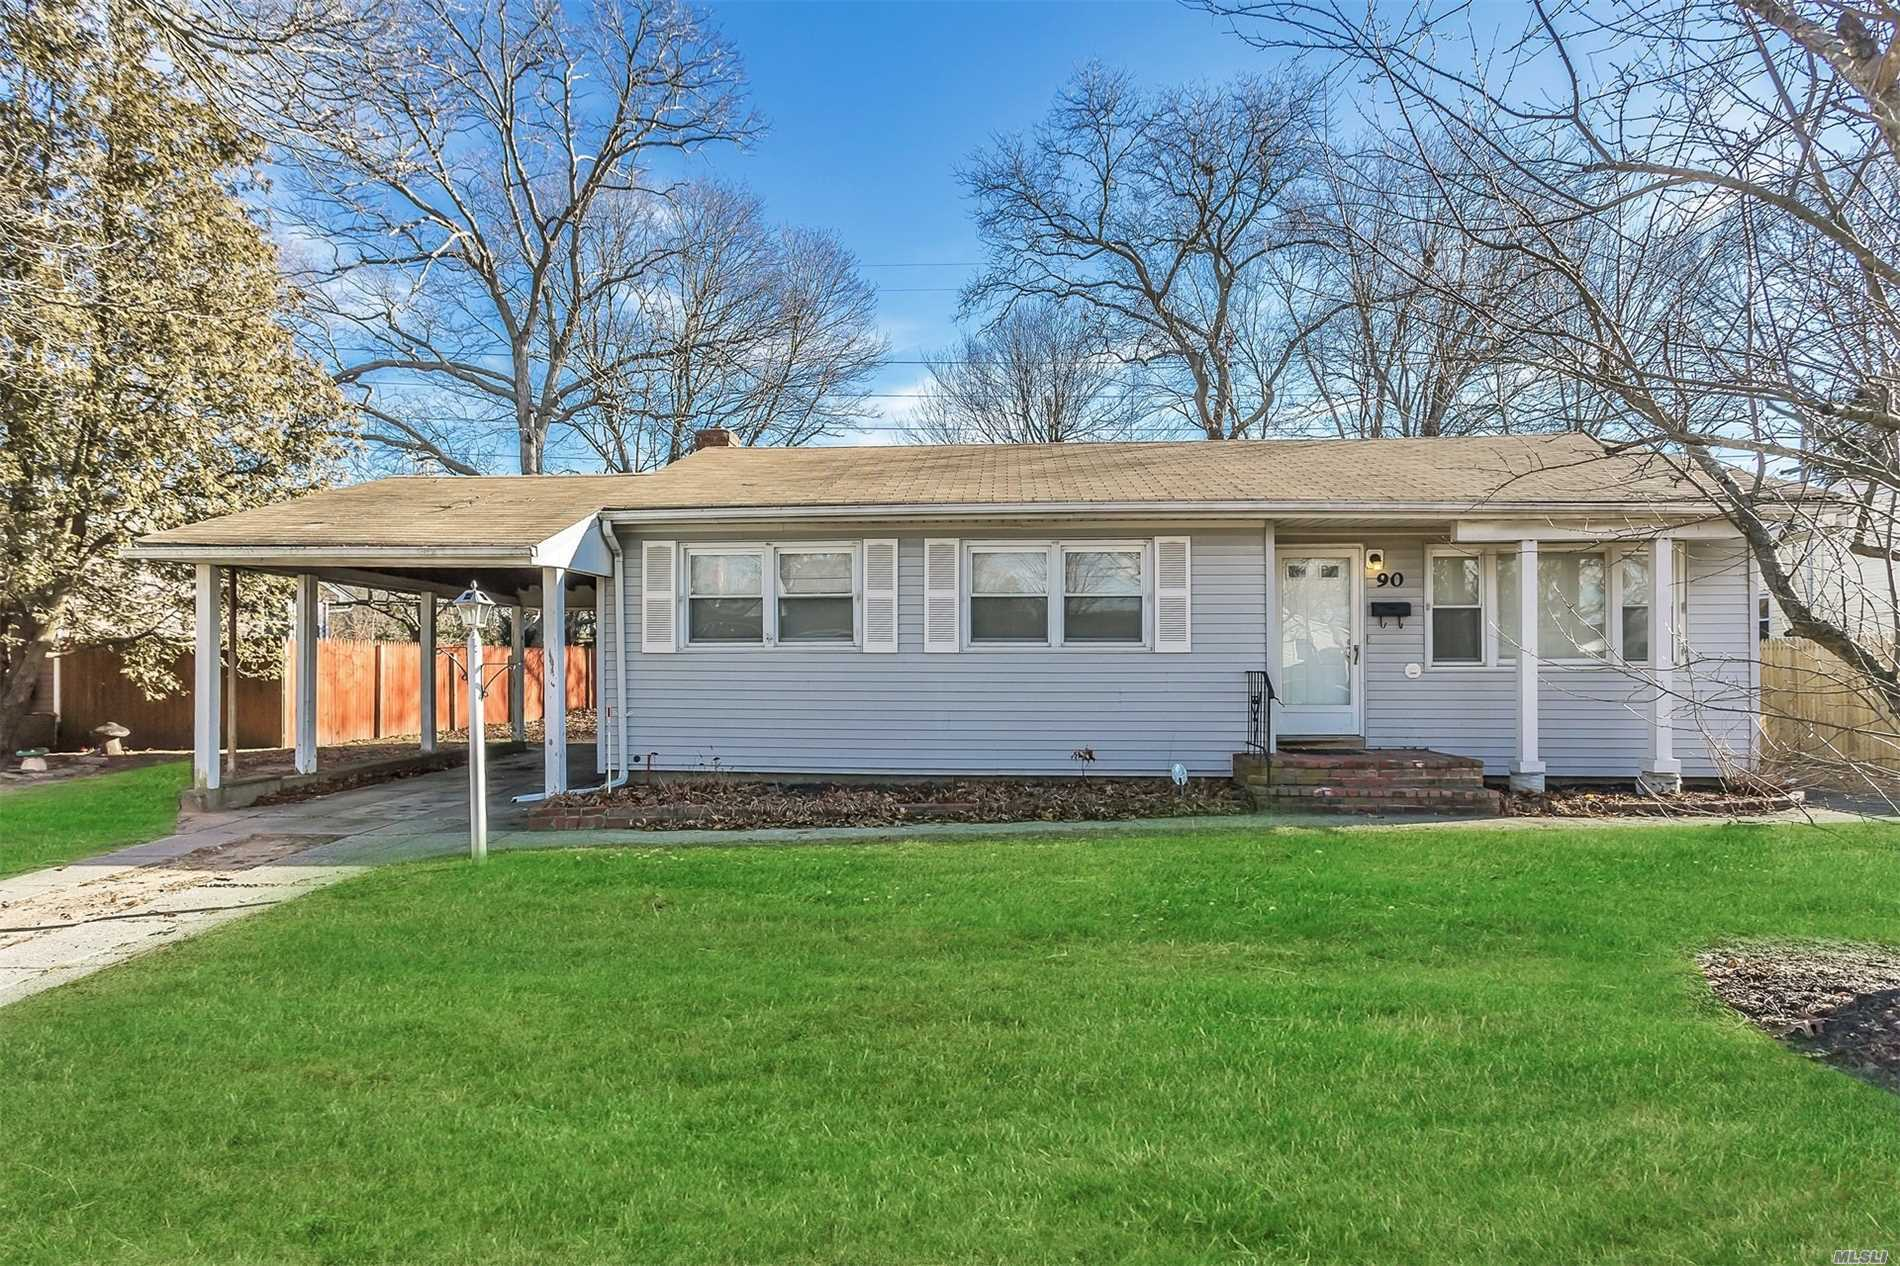 Great Starter Ranch W/Low Taxes! 3 Bedrooms, Hardwood Floors Throughout. New Appliances, Full Bsmnt, Gas Heat, 2 Car Detached Garage And Carport. Make This Your Own!